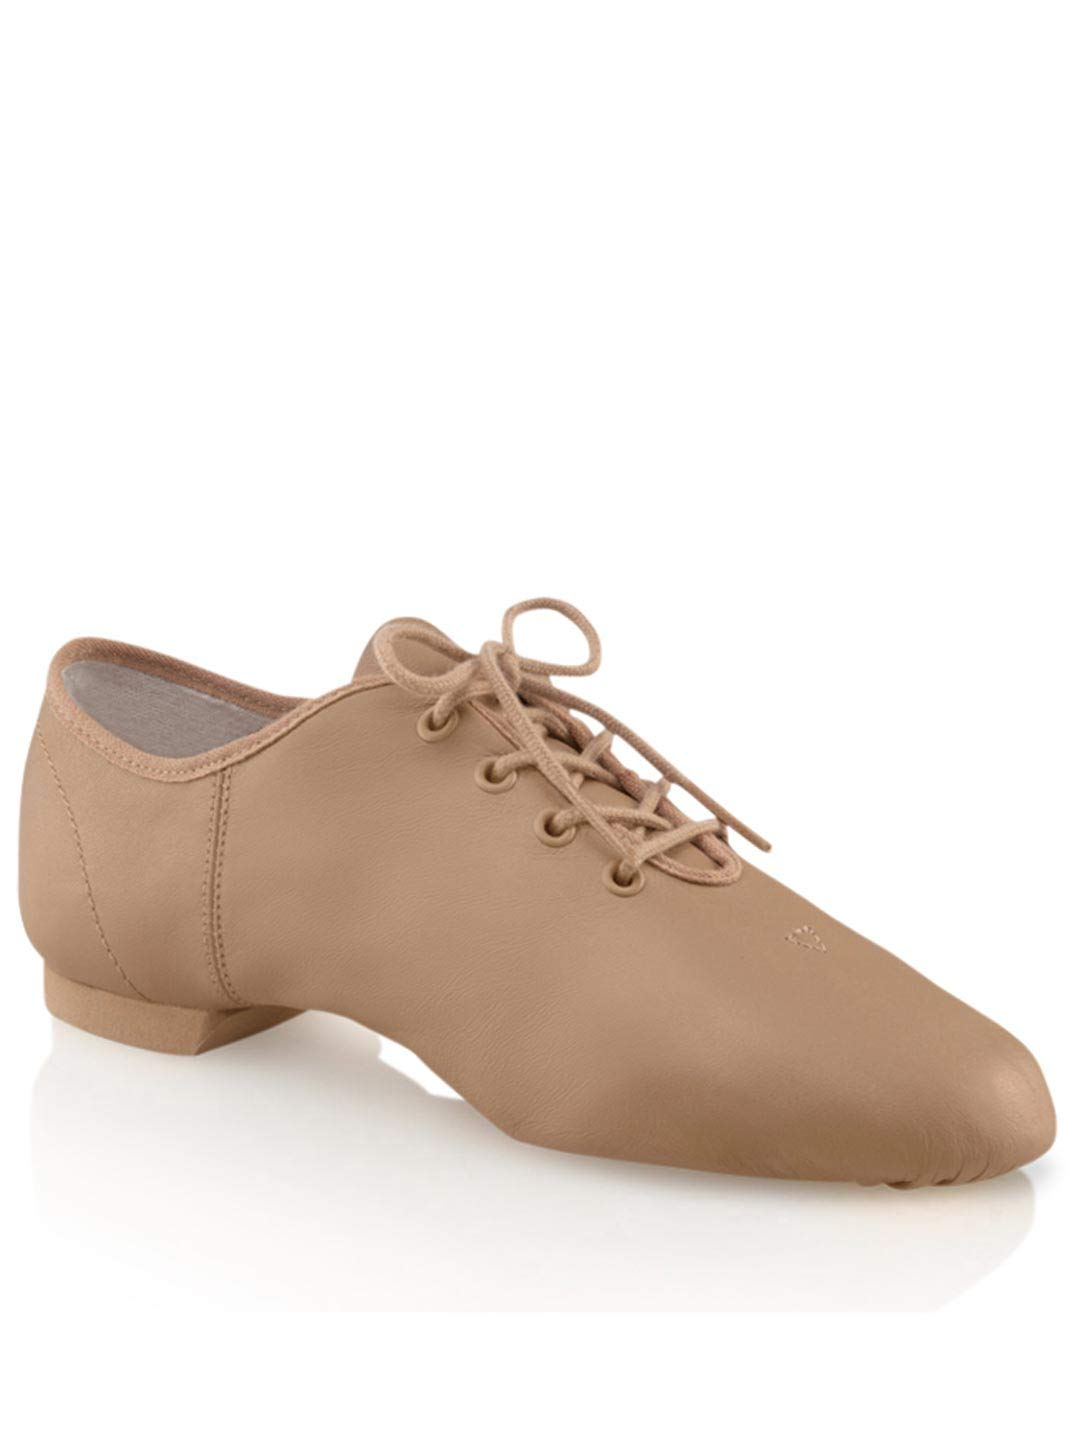 Capezio Women's ''E'' Series Jazz Oxford,Caramel,9 W US by Capezio